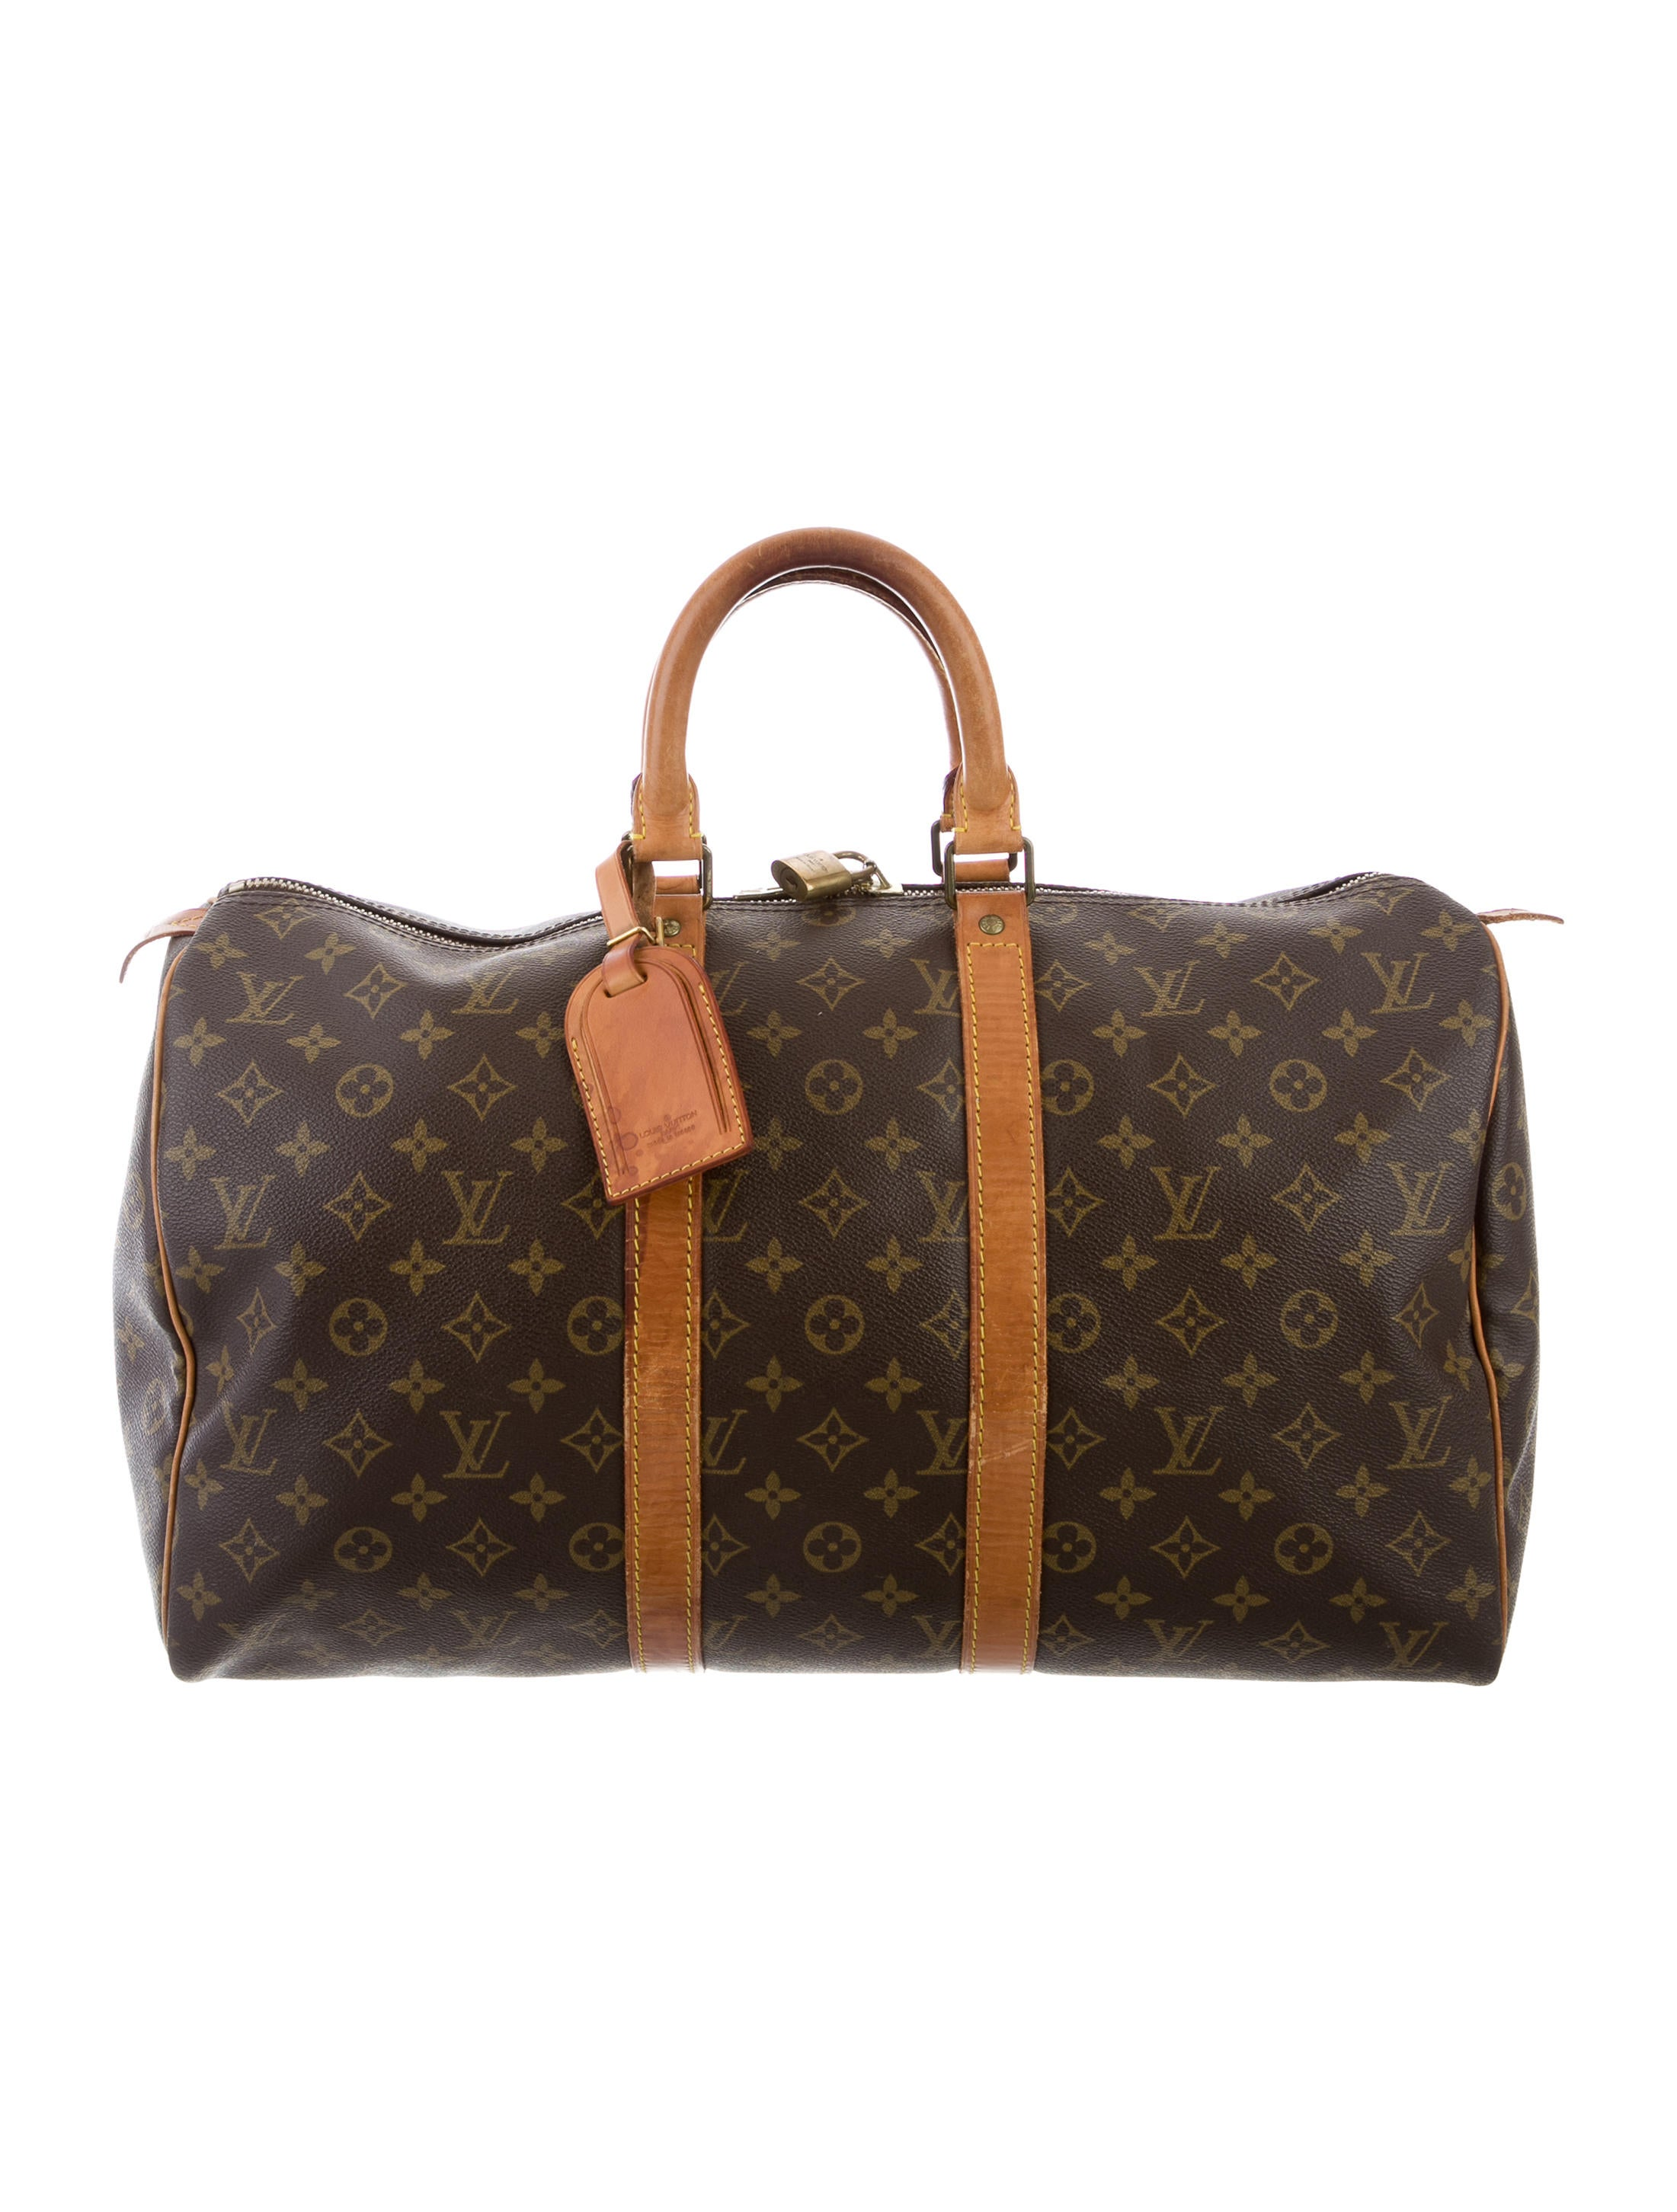 louis vuitton monogram keepall 45 handbags lou116399 the realreal. Black Bedroom Furniture Sets. Home Design Ideas